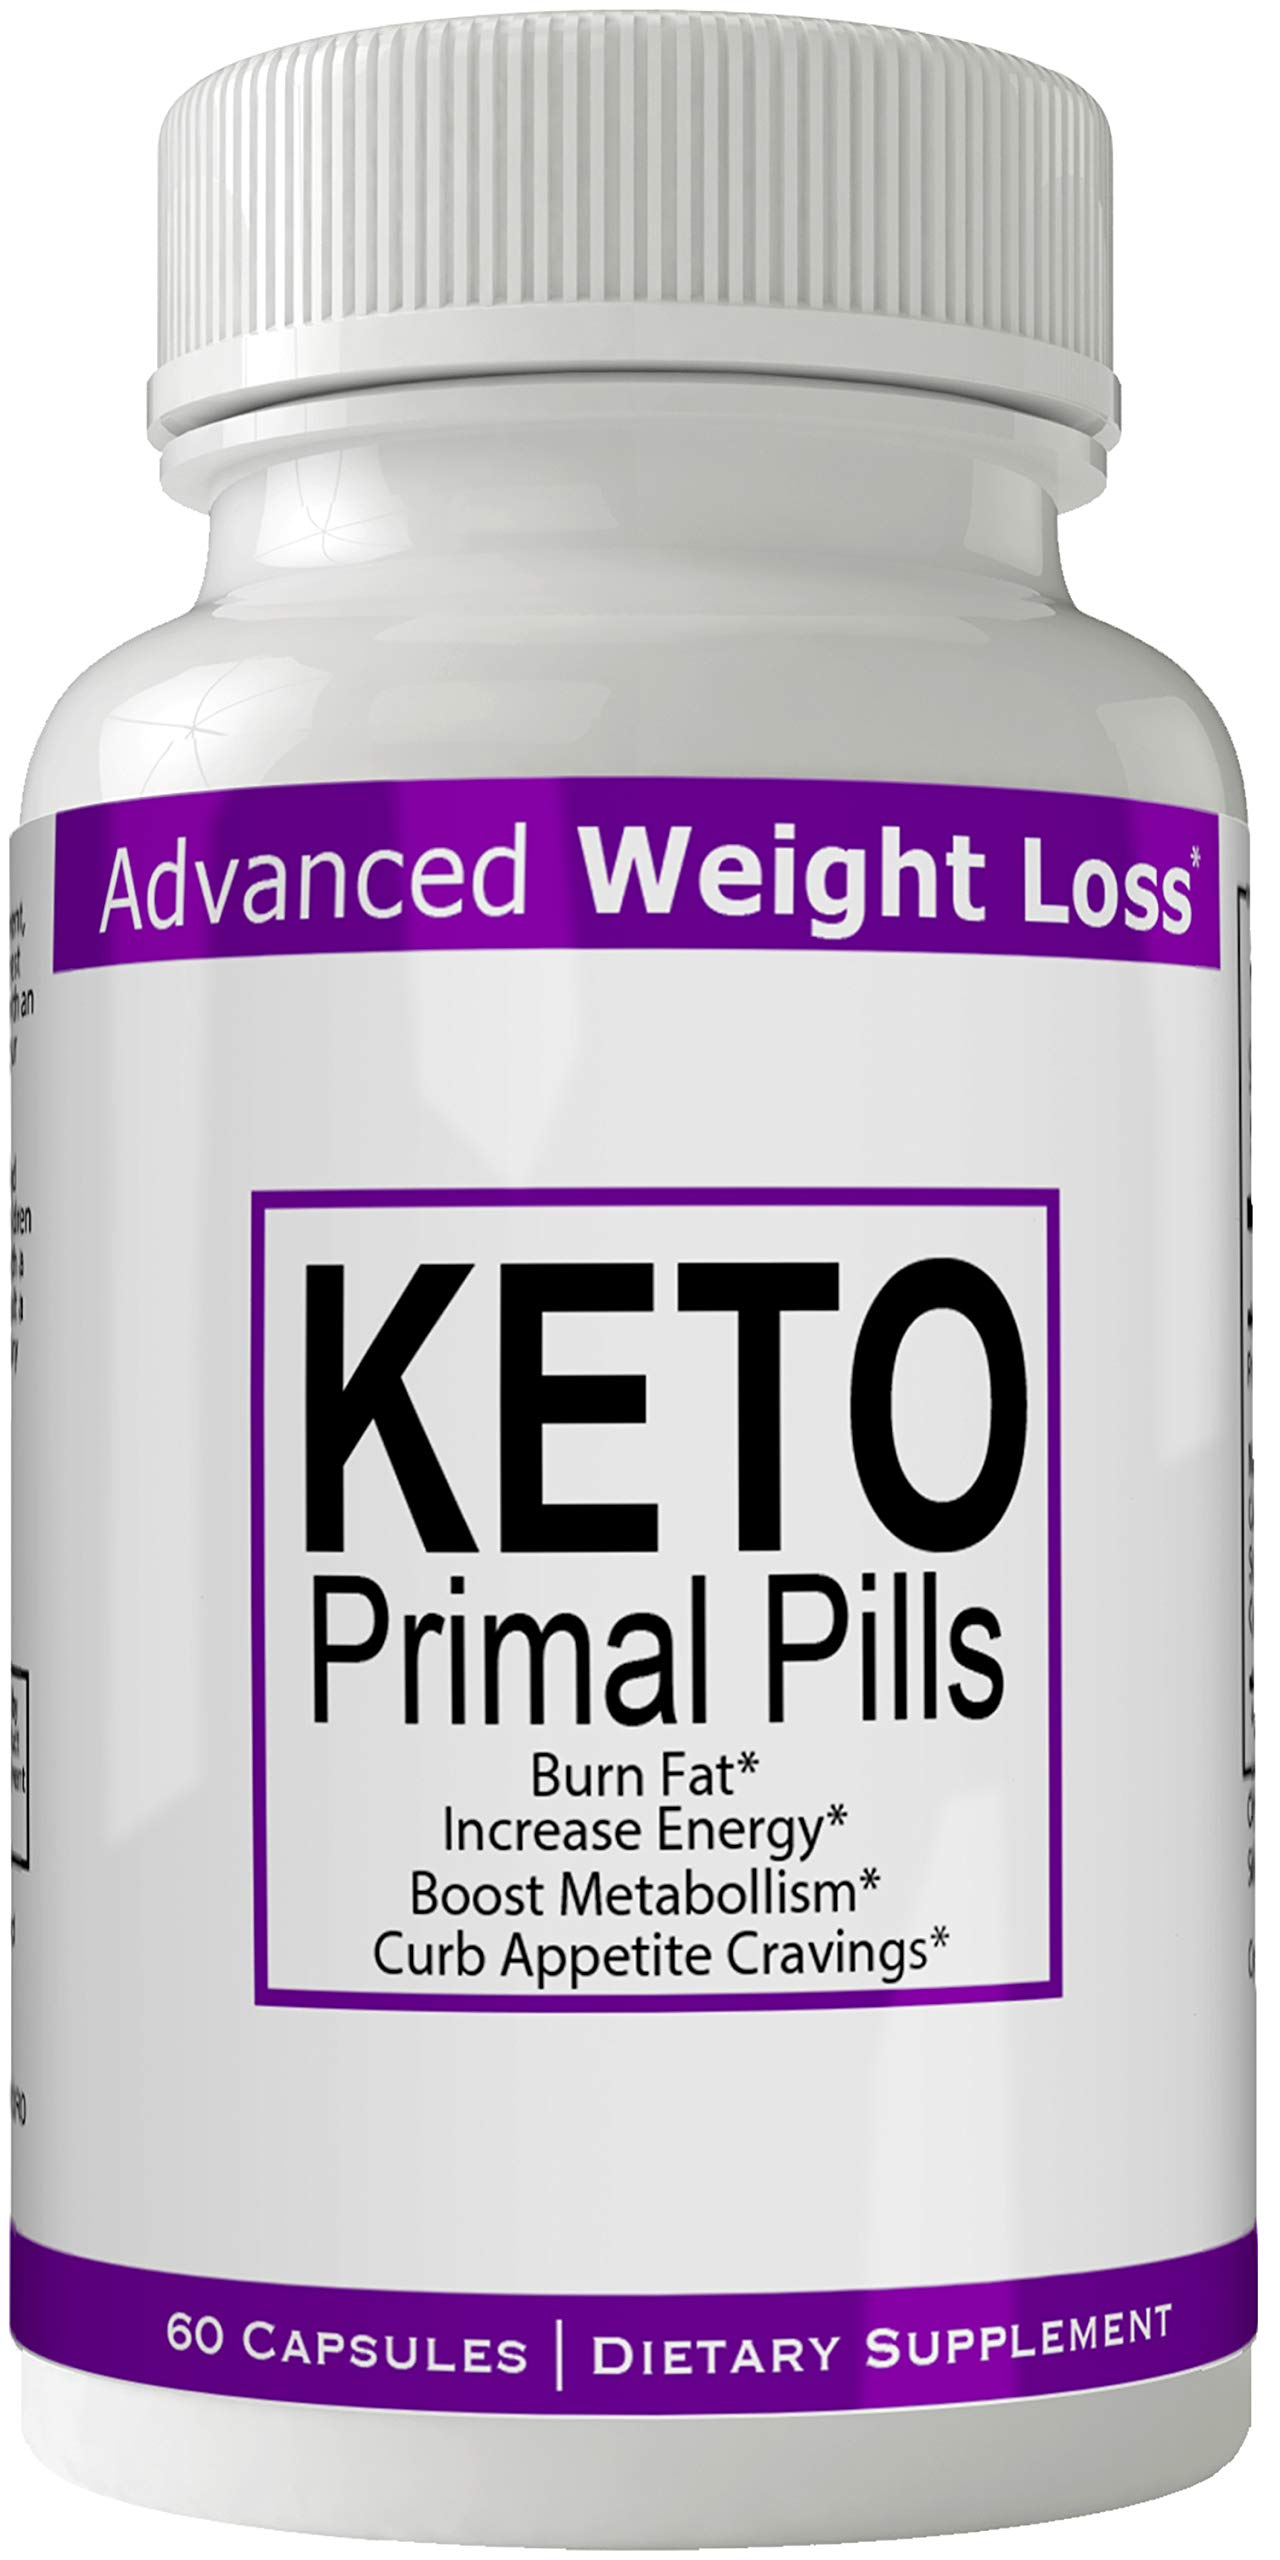 Keto Primal Pills Advanced Weight Loss Supplement - Keto Primal Pills Weight Loss Capsules - Advanced Weight Loss 800 mg Formula Pills - BHB Salts Tablets Original by nutra4health by nutra4health LLC